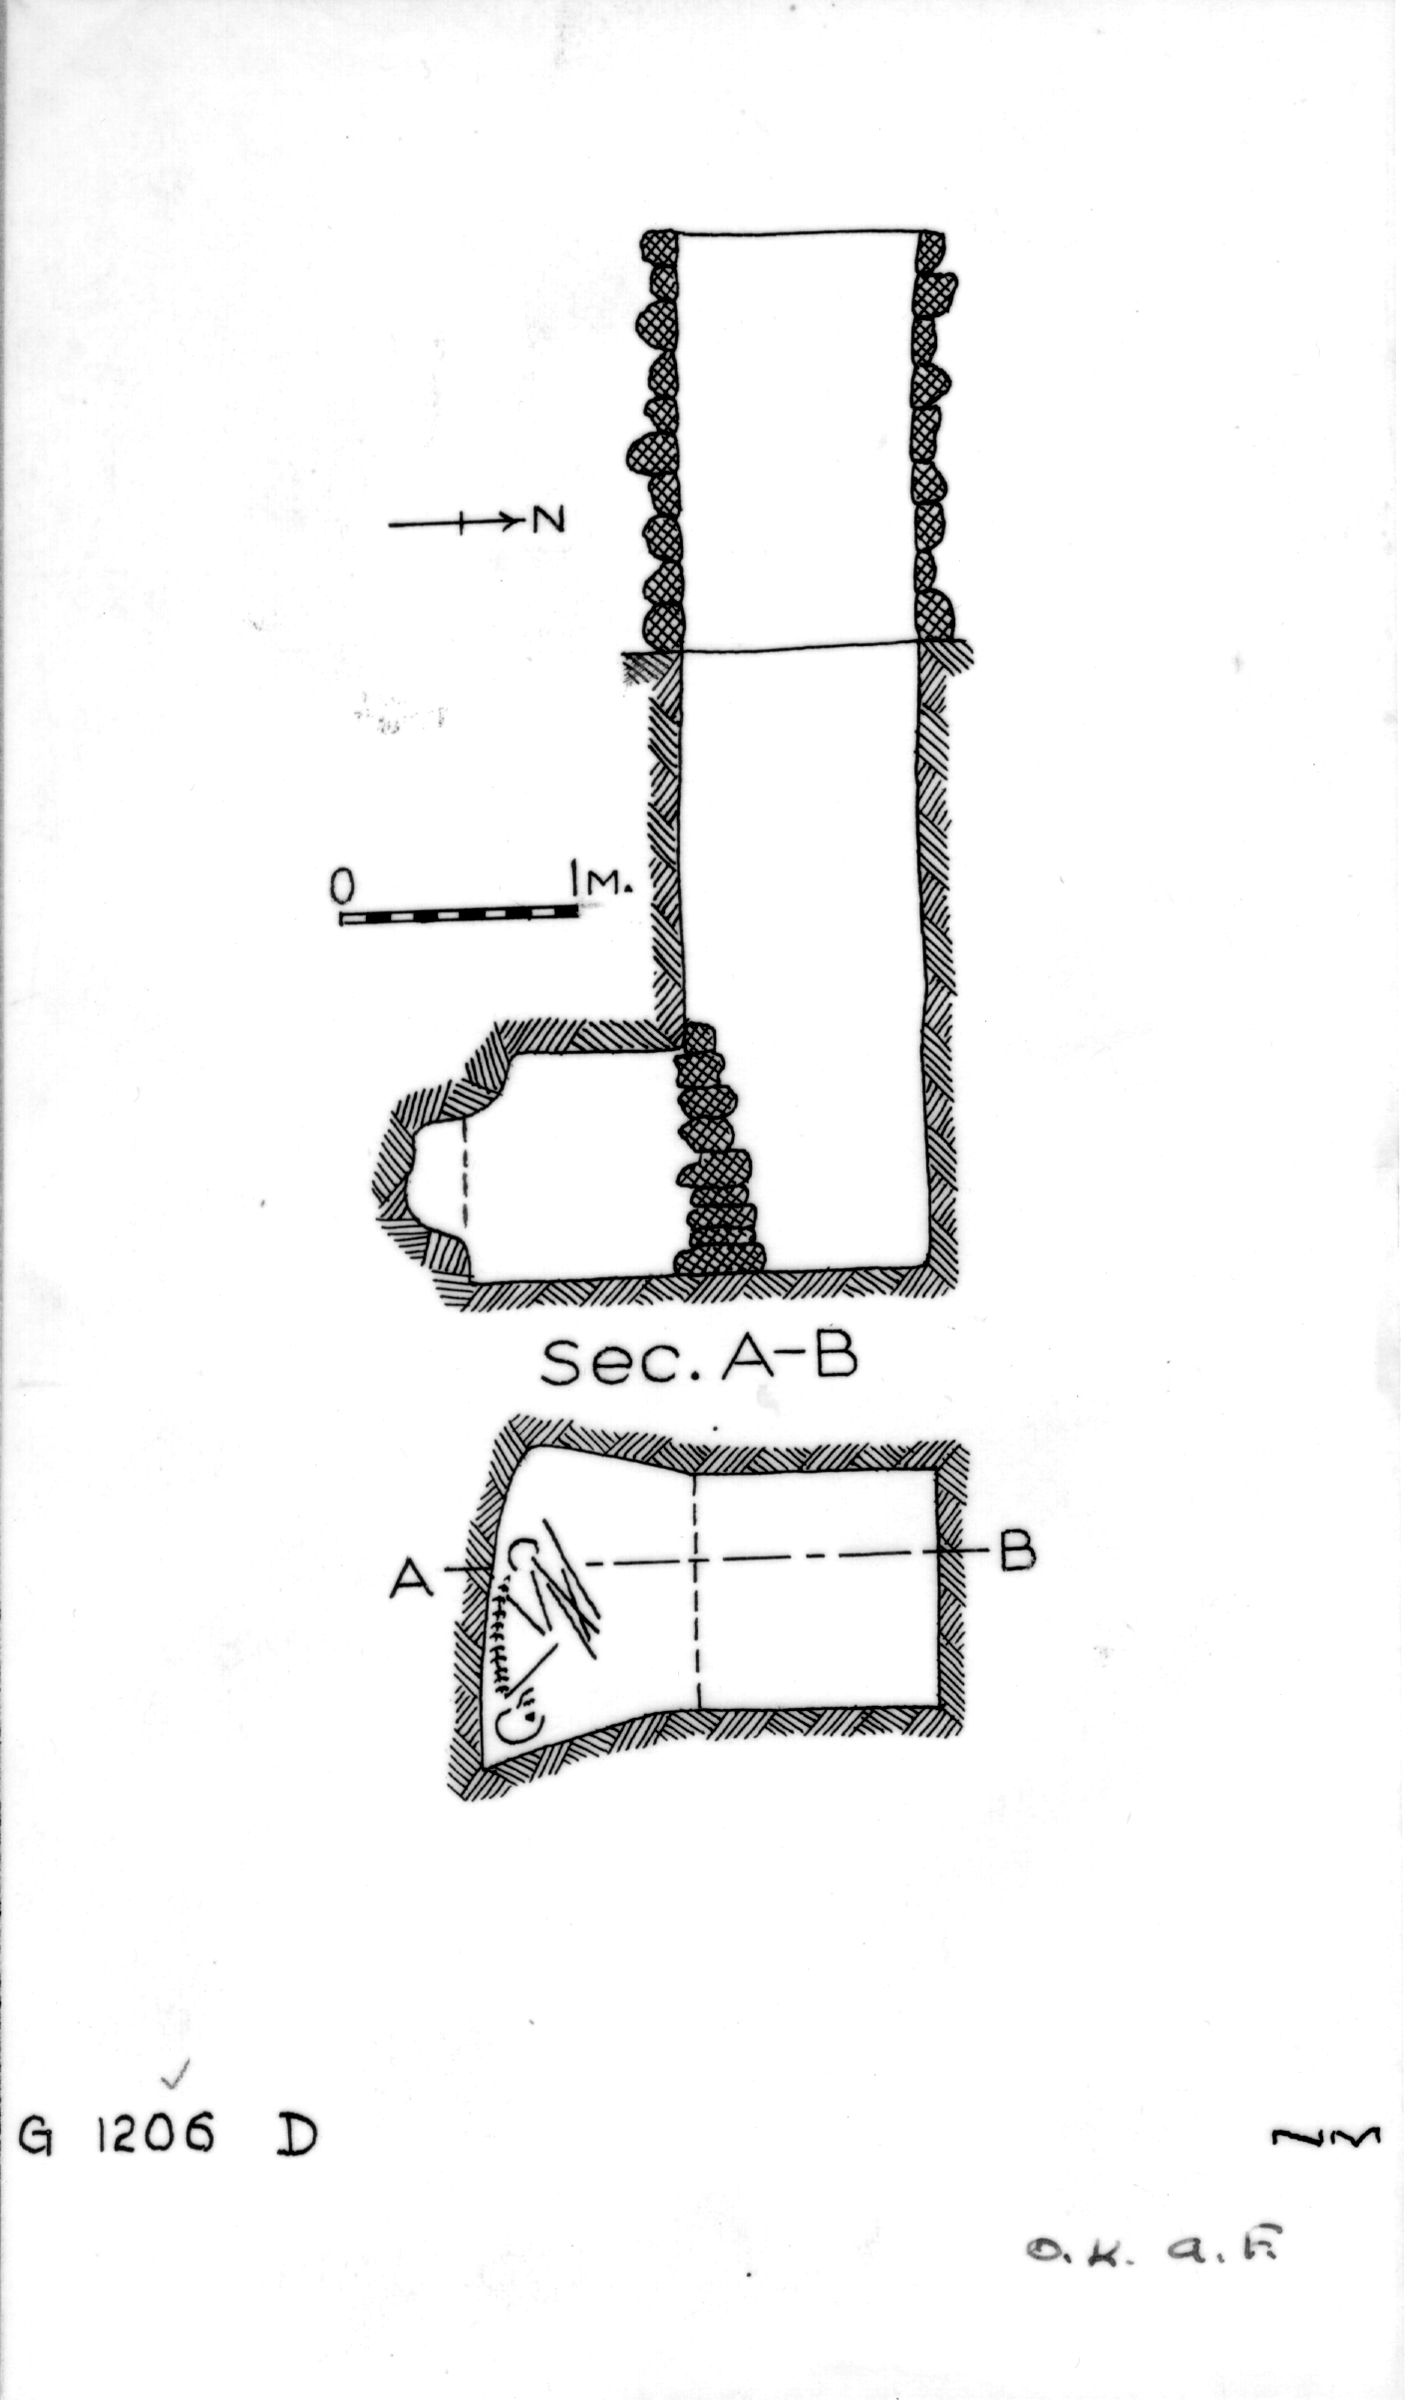 Maps and plans: G 1206, Shaft D